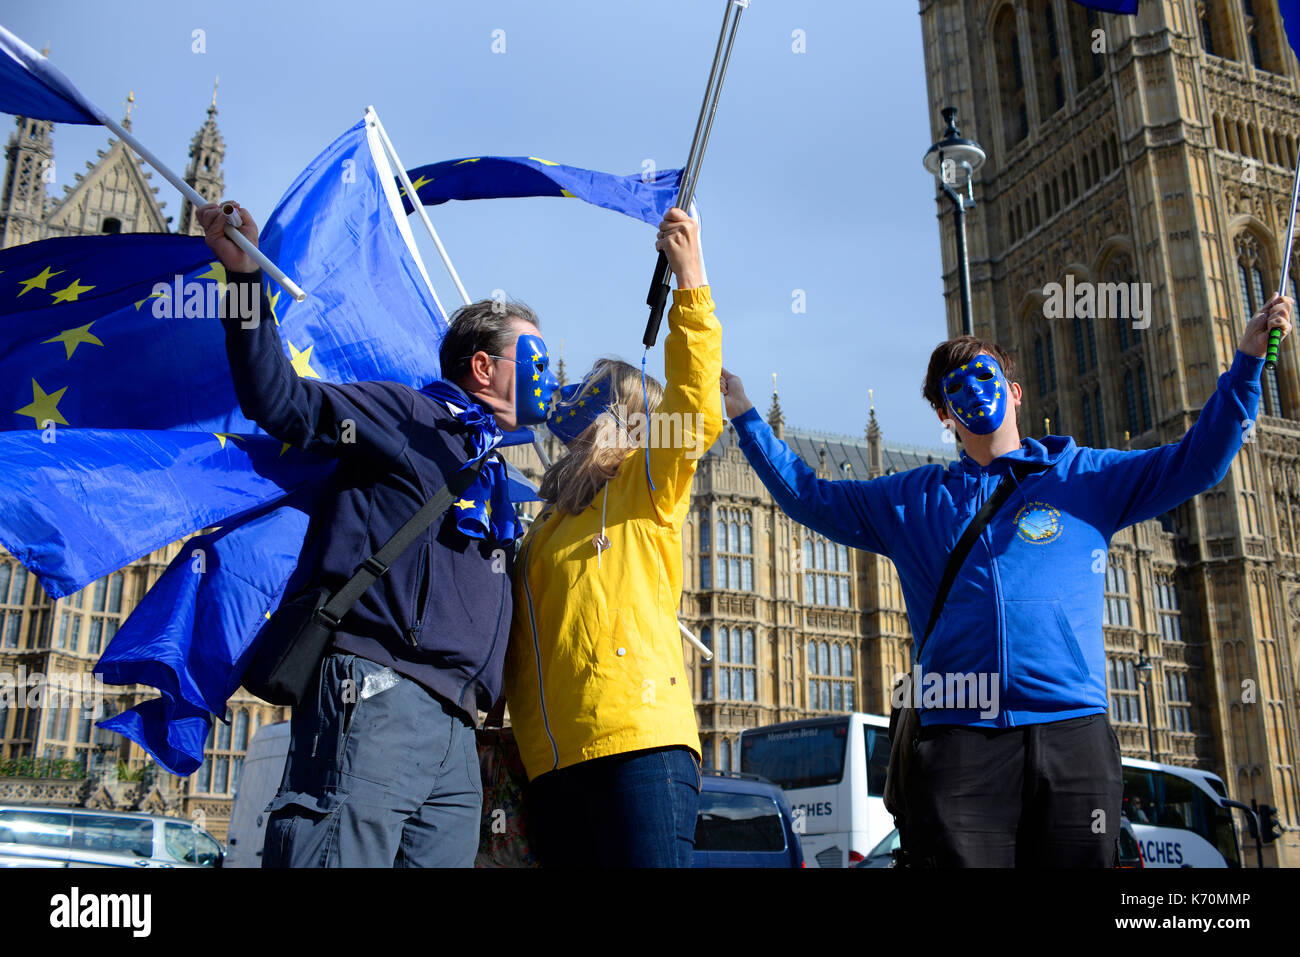 Pro Europe remainers anti brexit protesters waving European flags outside Houses of Parliament Palace of Westminster London. Space for copy - Stock Image